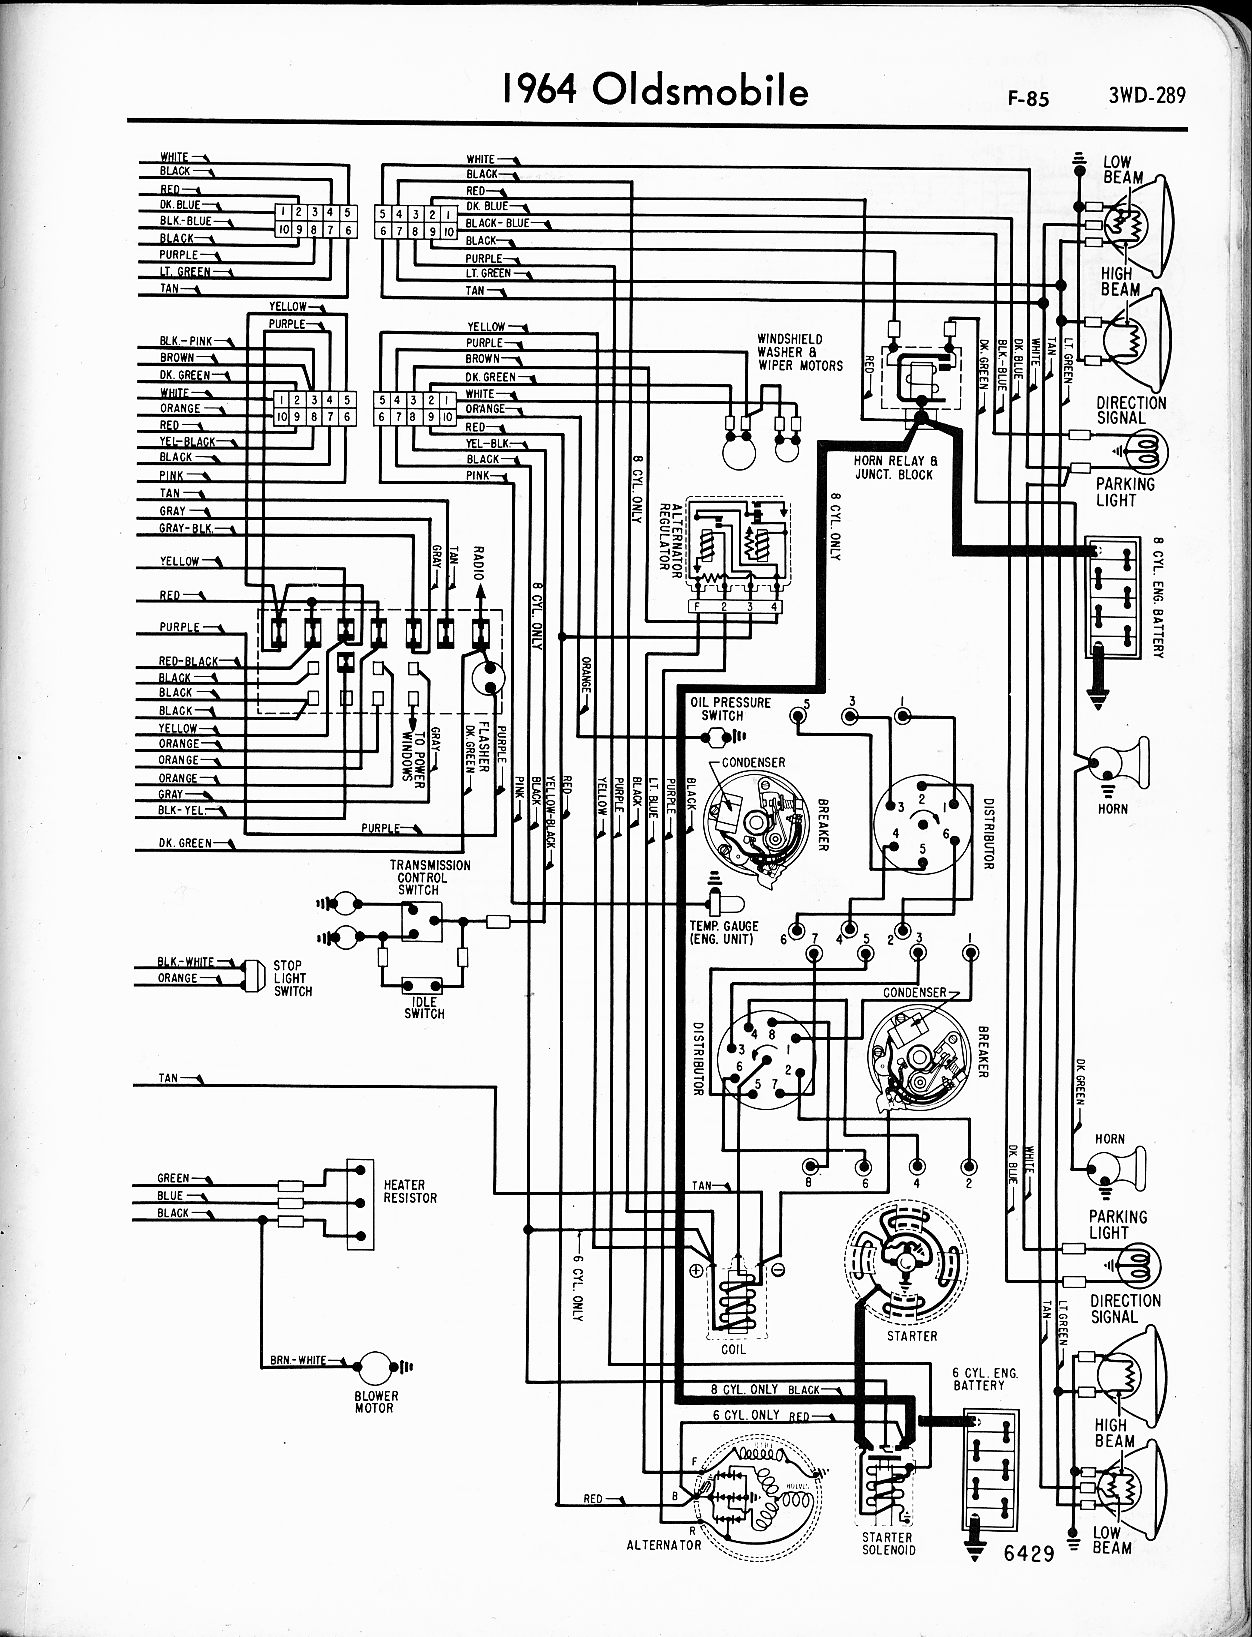 Old Car Fuse Box Repair Parts Auto Electrical Wiring Diagram Oldsmobile Diagrams Automotive